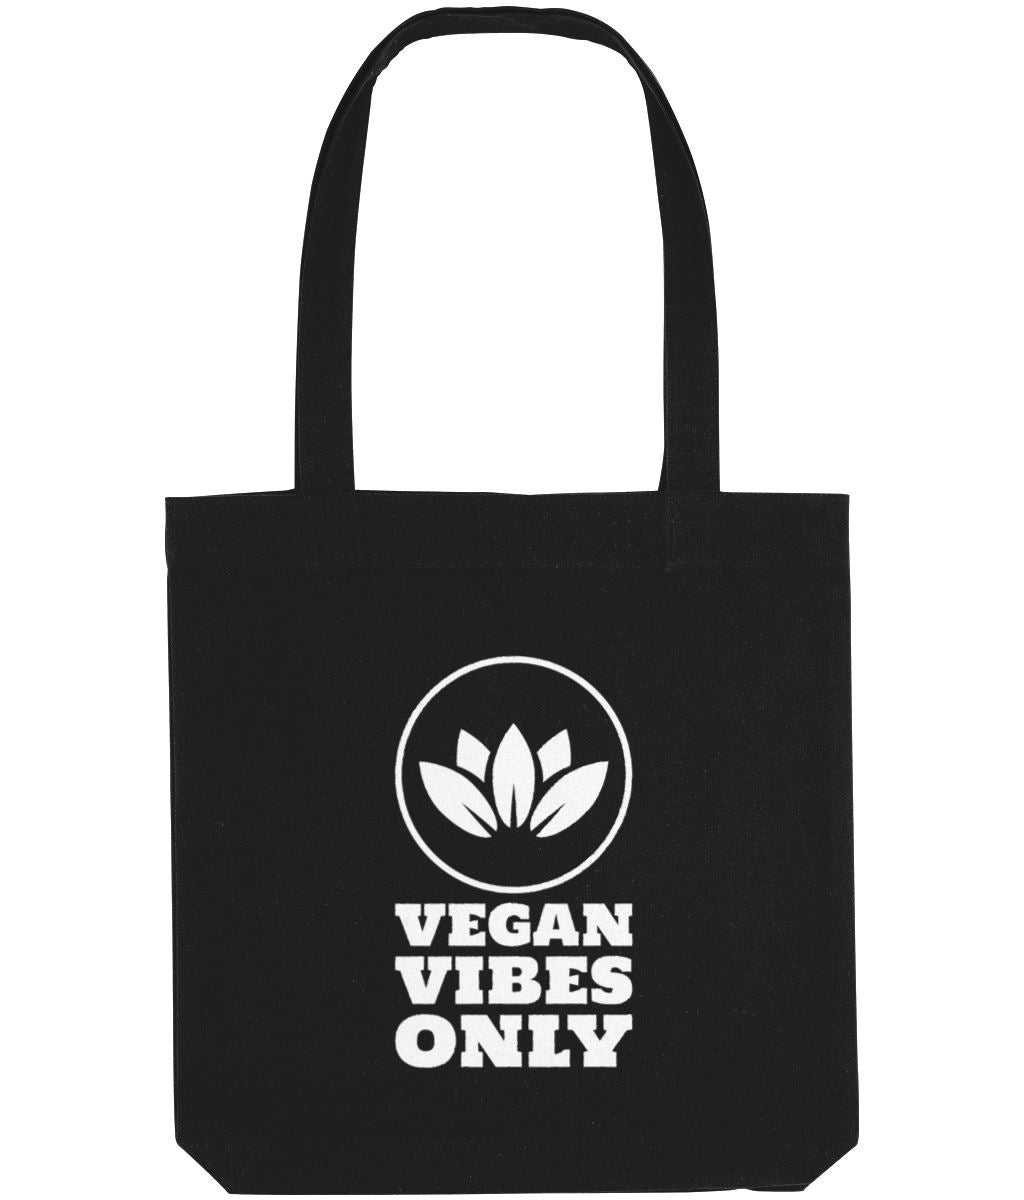 """Vegan Vibes Only"" Cruelty-Free Tote Bag Clothing Vegan Original Black"